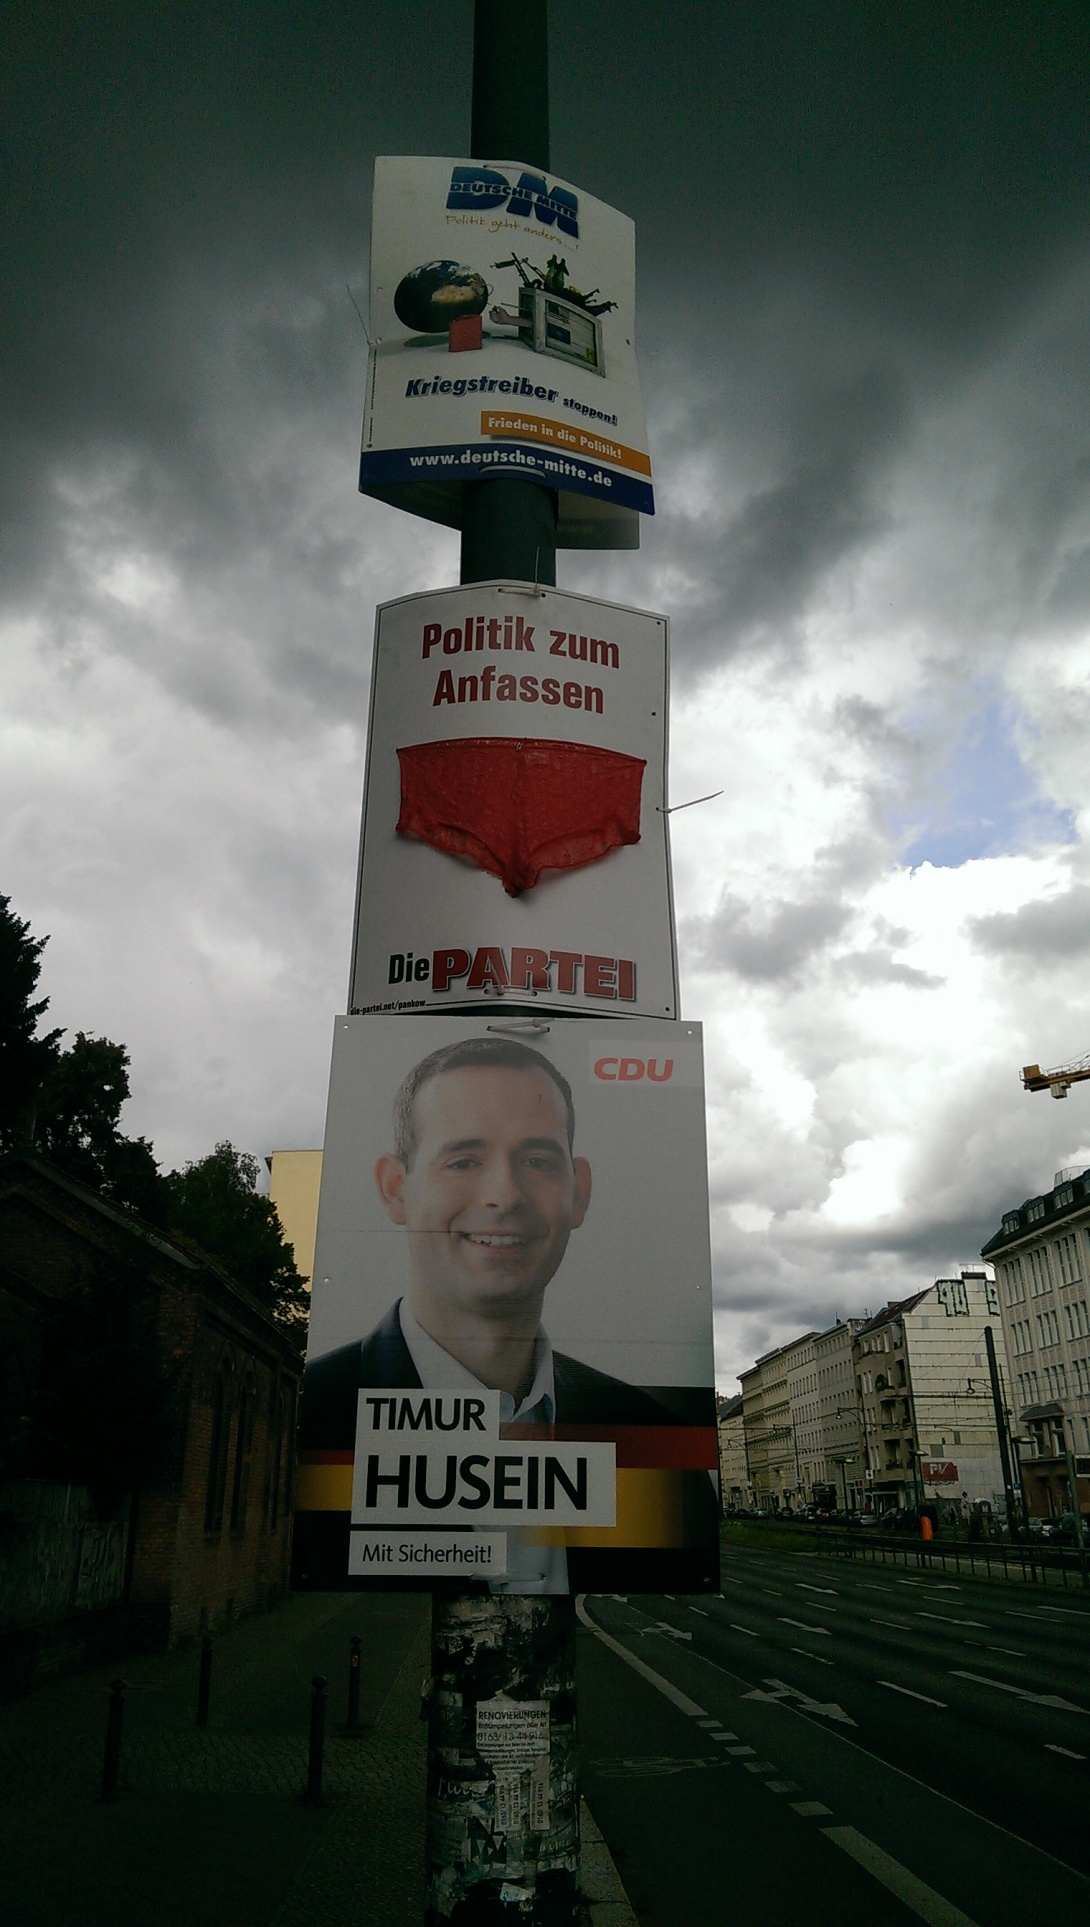 be kitschig election posters from Berlin